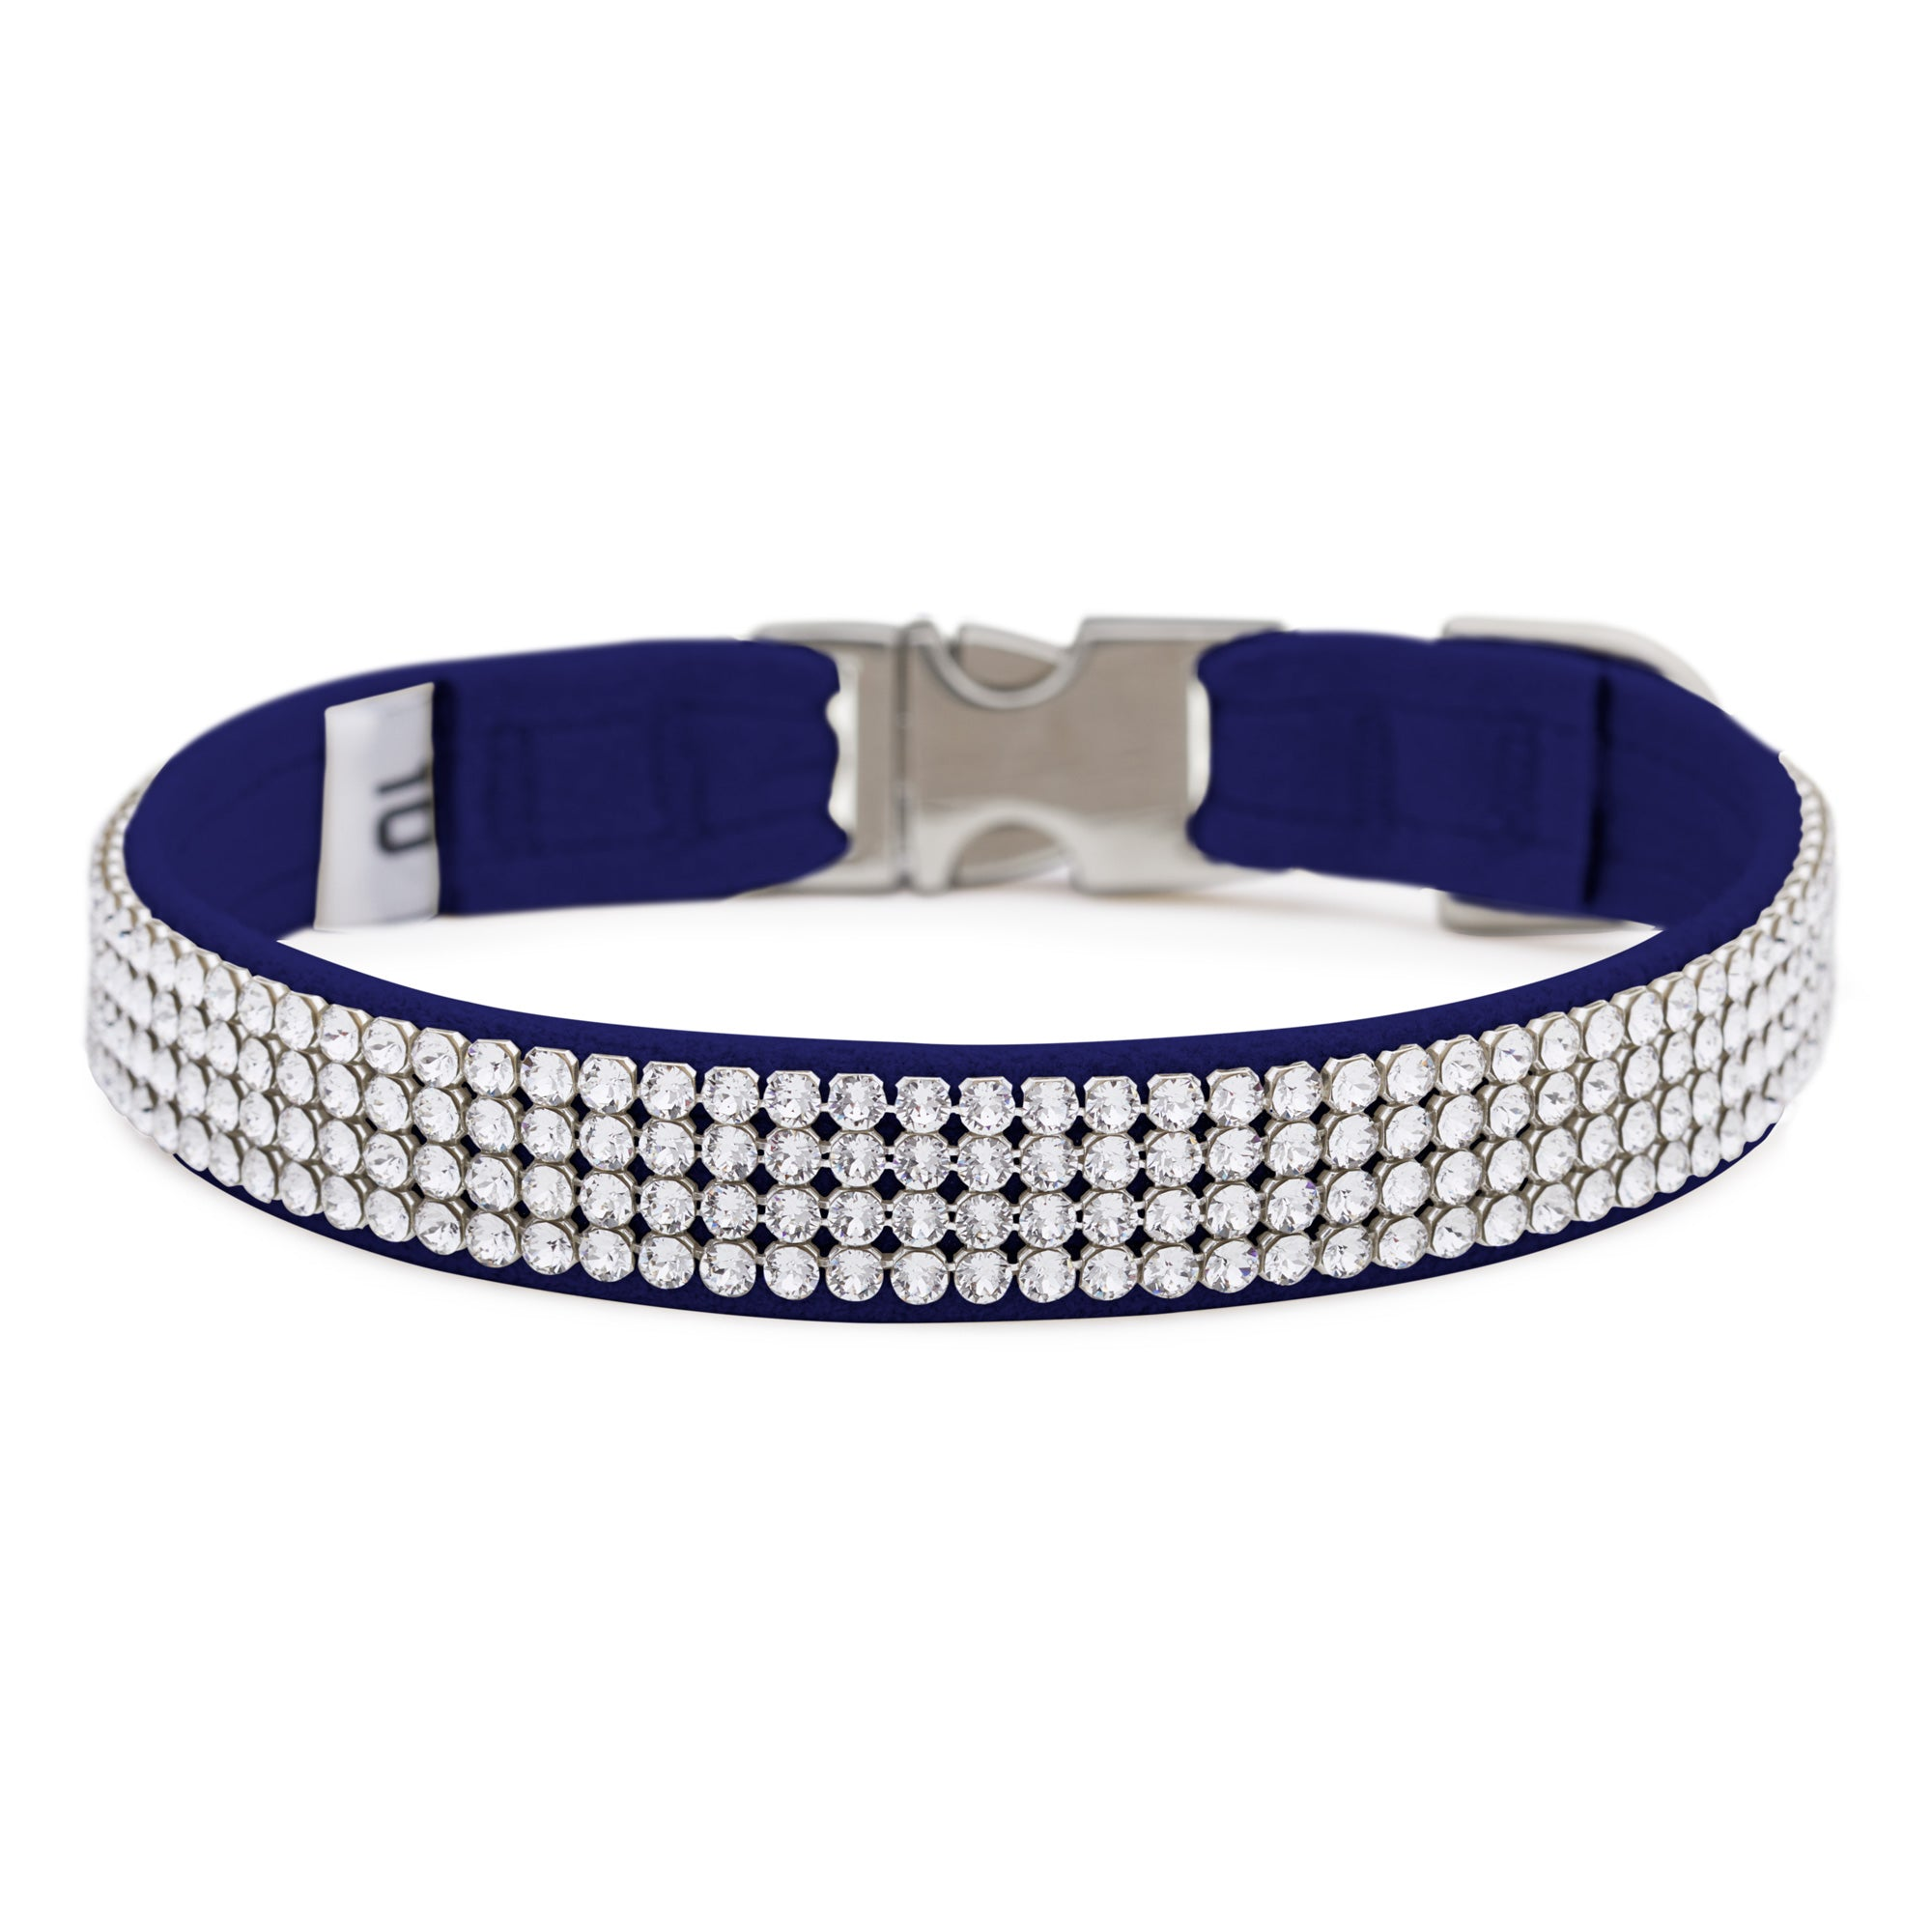 Indigo 4 Row Giltmore Perfect Fit Collar